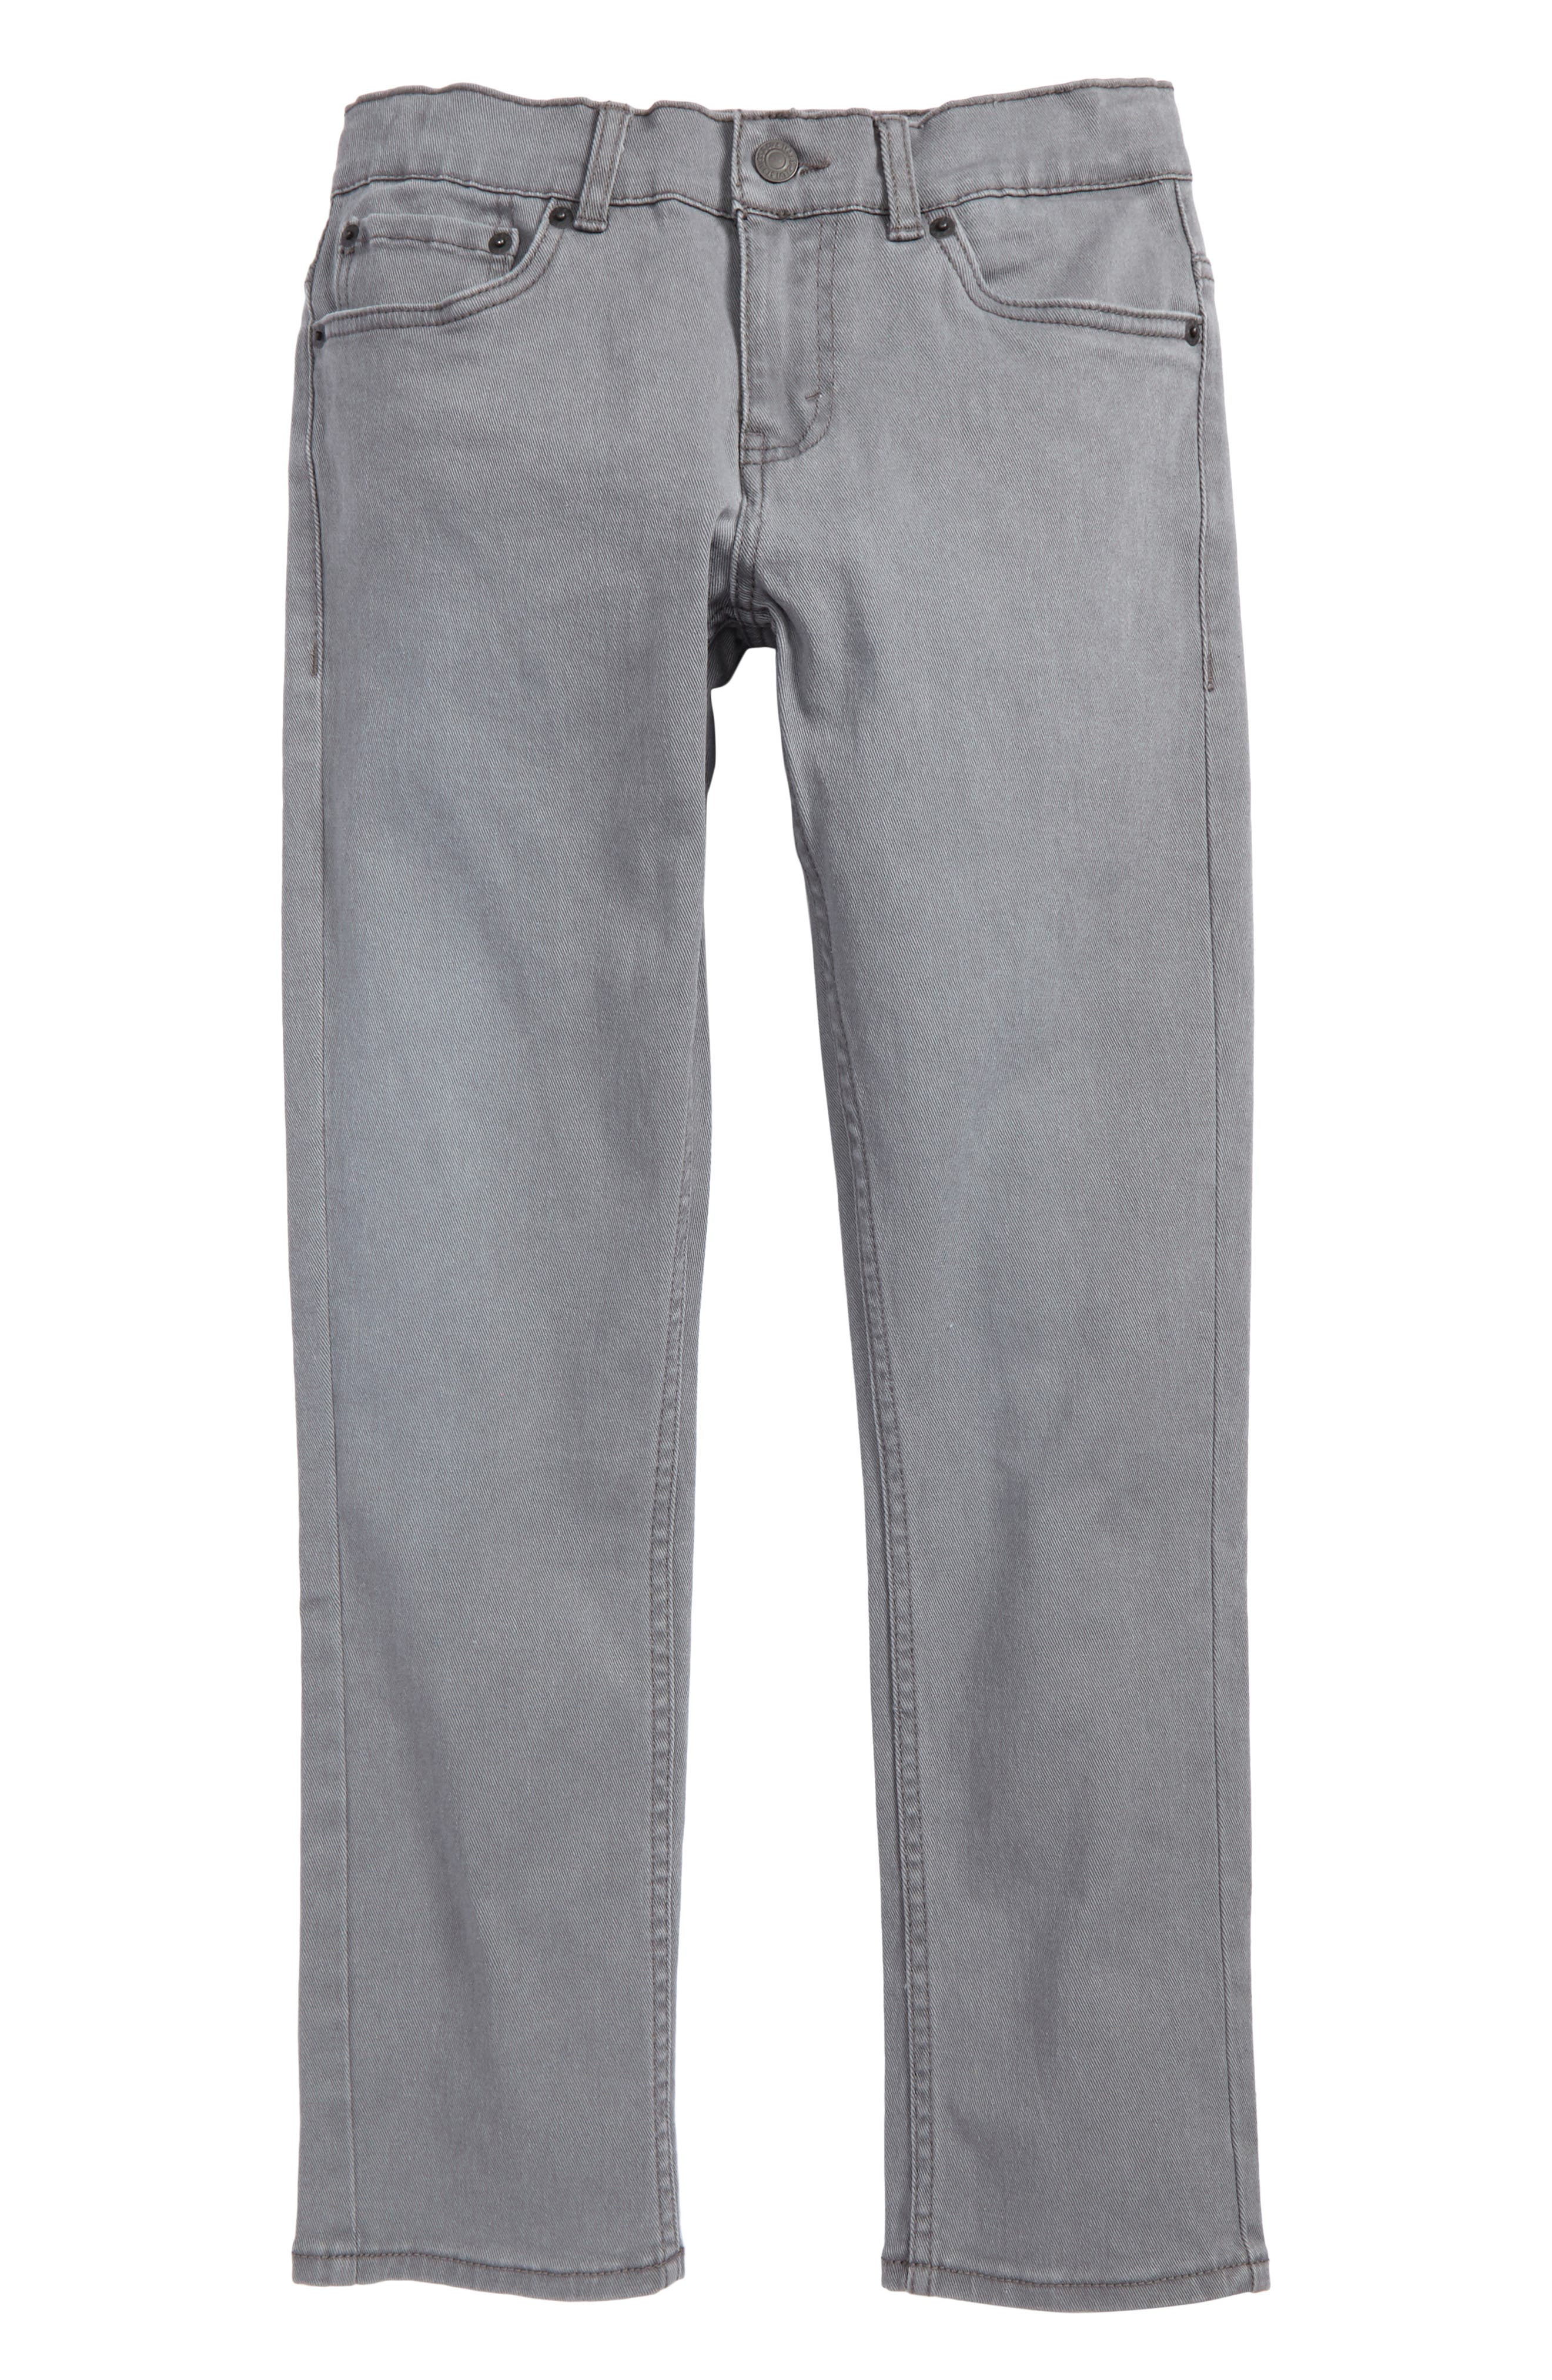 511 Slim Fit Jeans,                         Main,                         color, Smoked Pearl